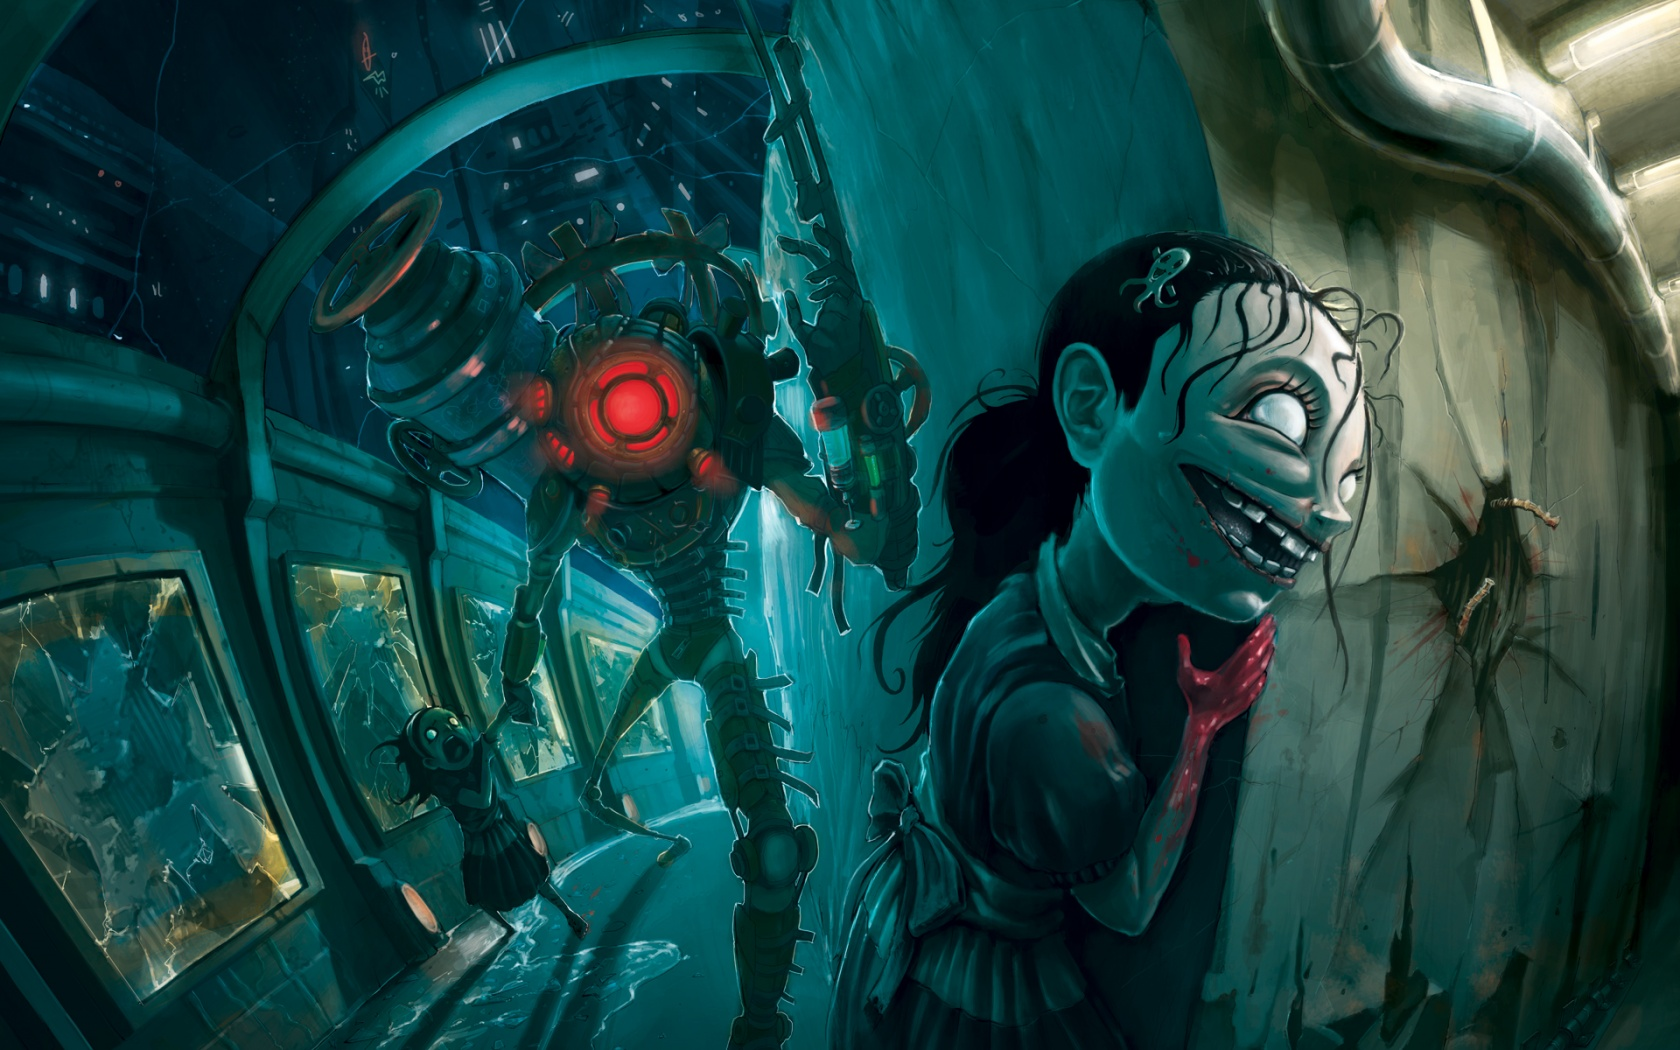 bioshock rapture wallpaper A2